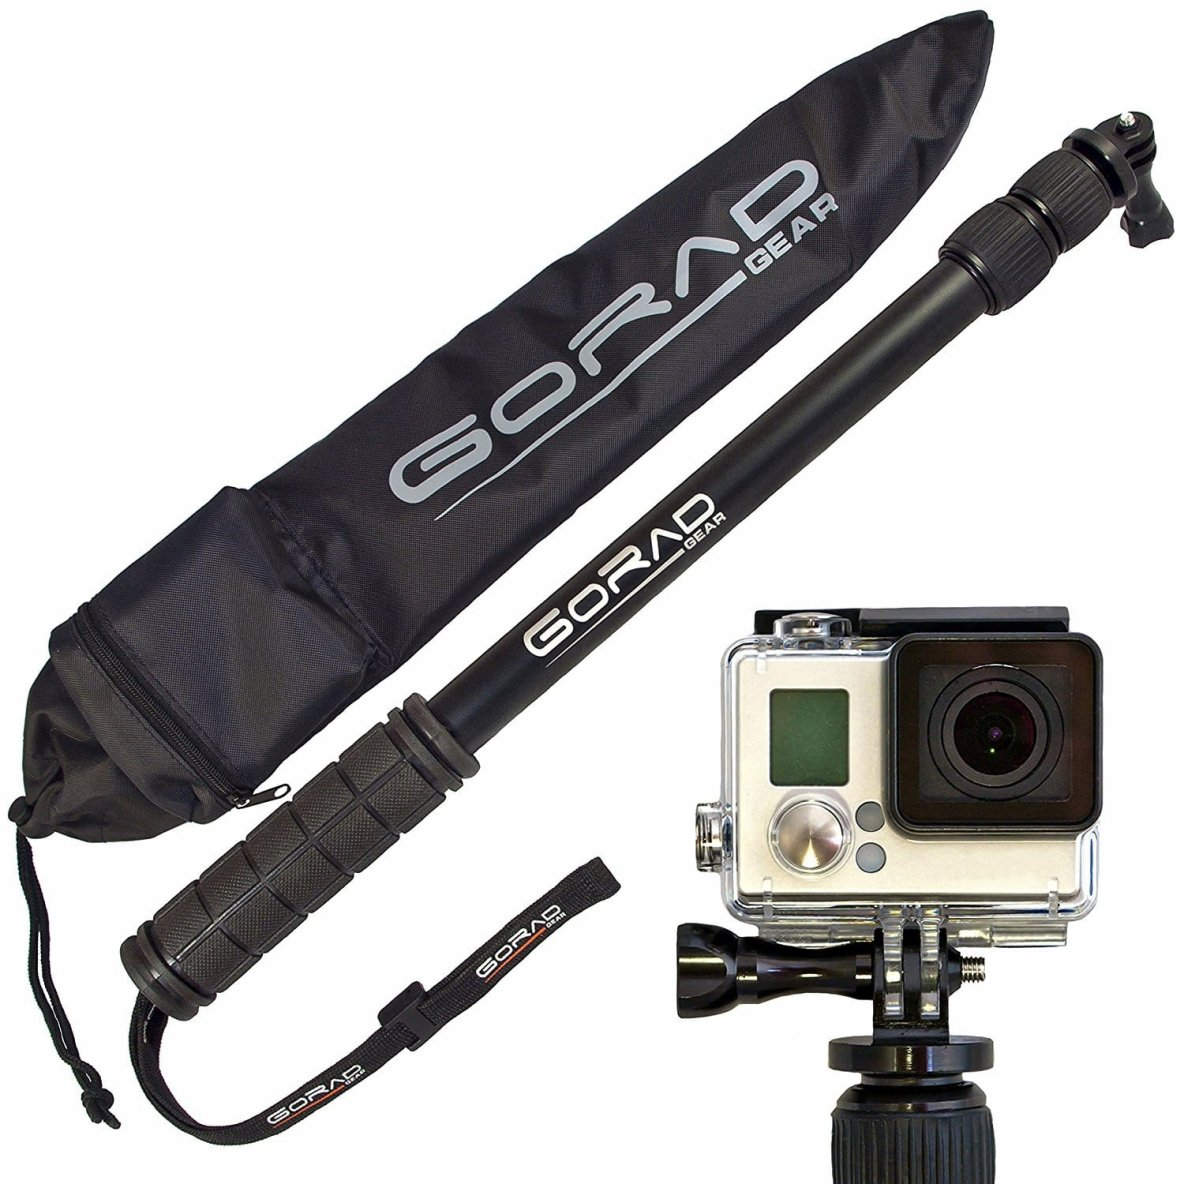 Top 10 Best Monopods 2018 - Buyer's Guide (January. 2018)